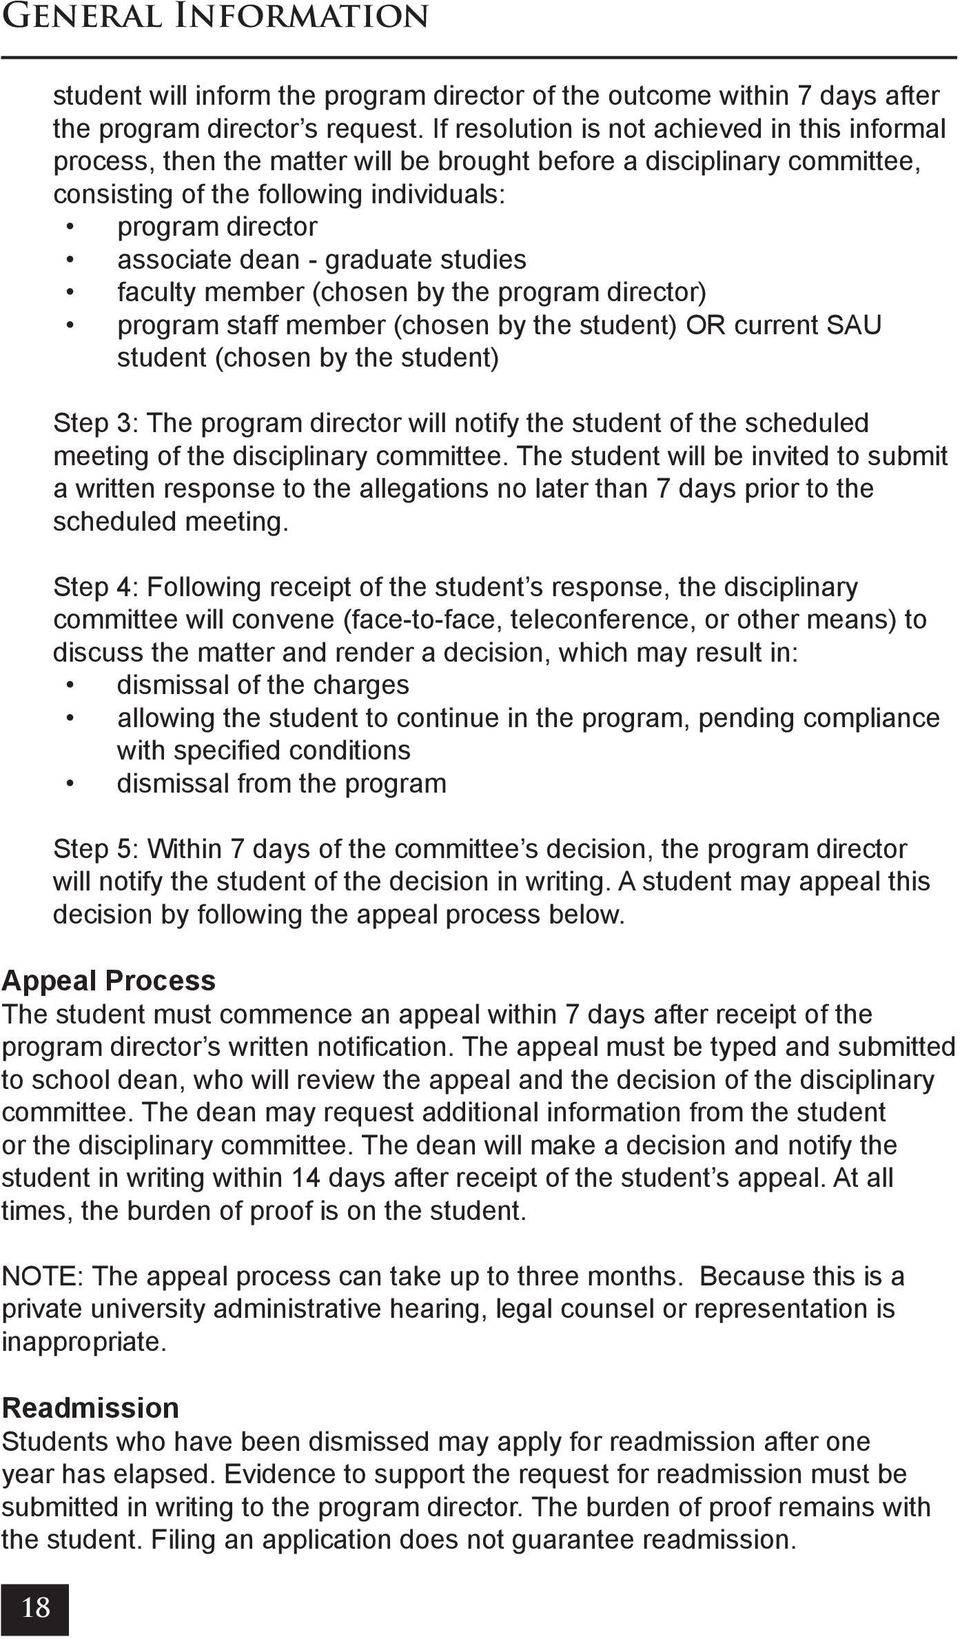 graduate studies faculty member (chosen by the program director) program staff member (chosen by the student) OR current SAU student (chosen by the student) Step 3: The program director will notify